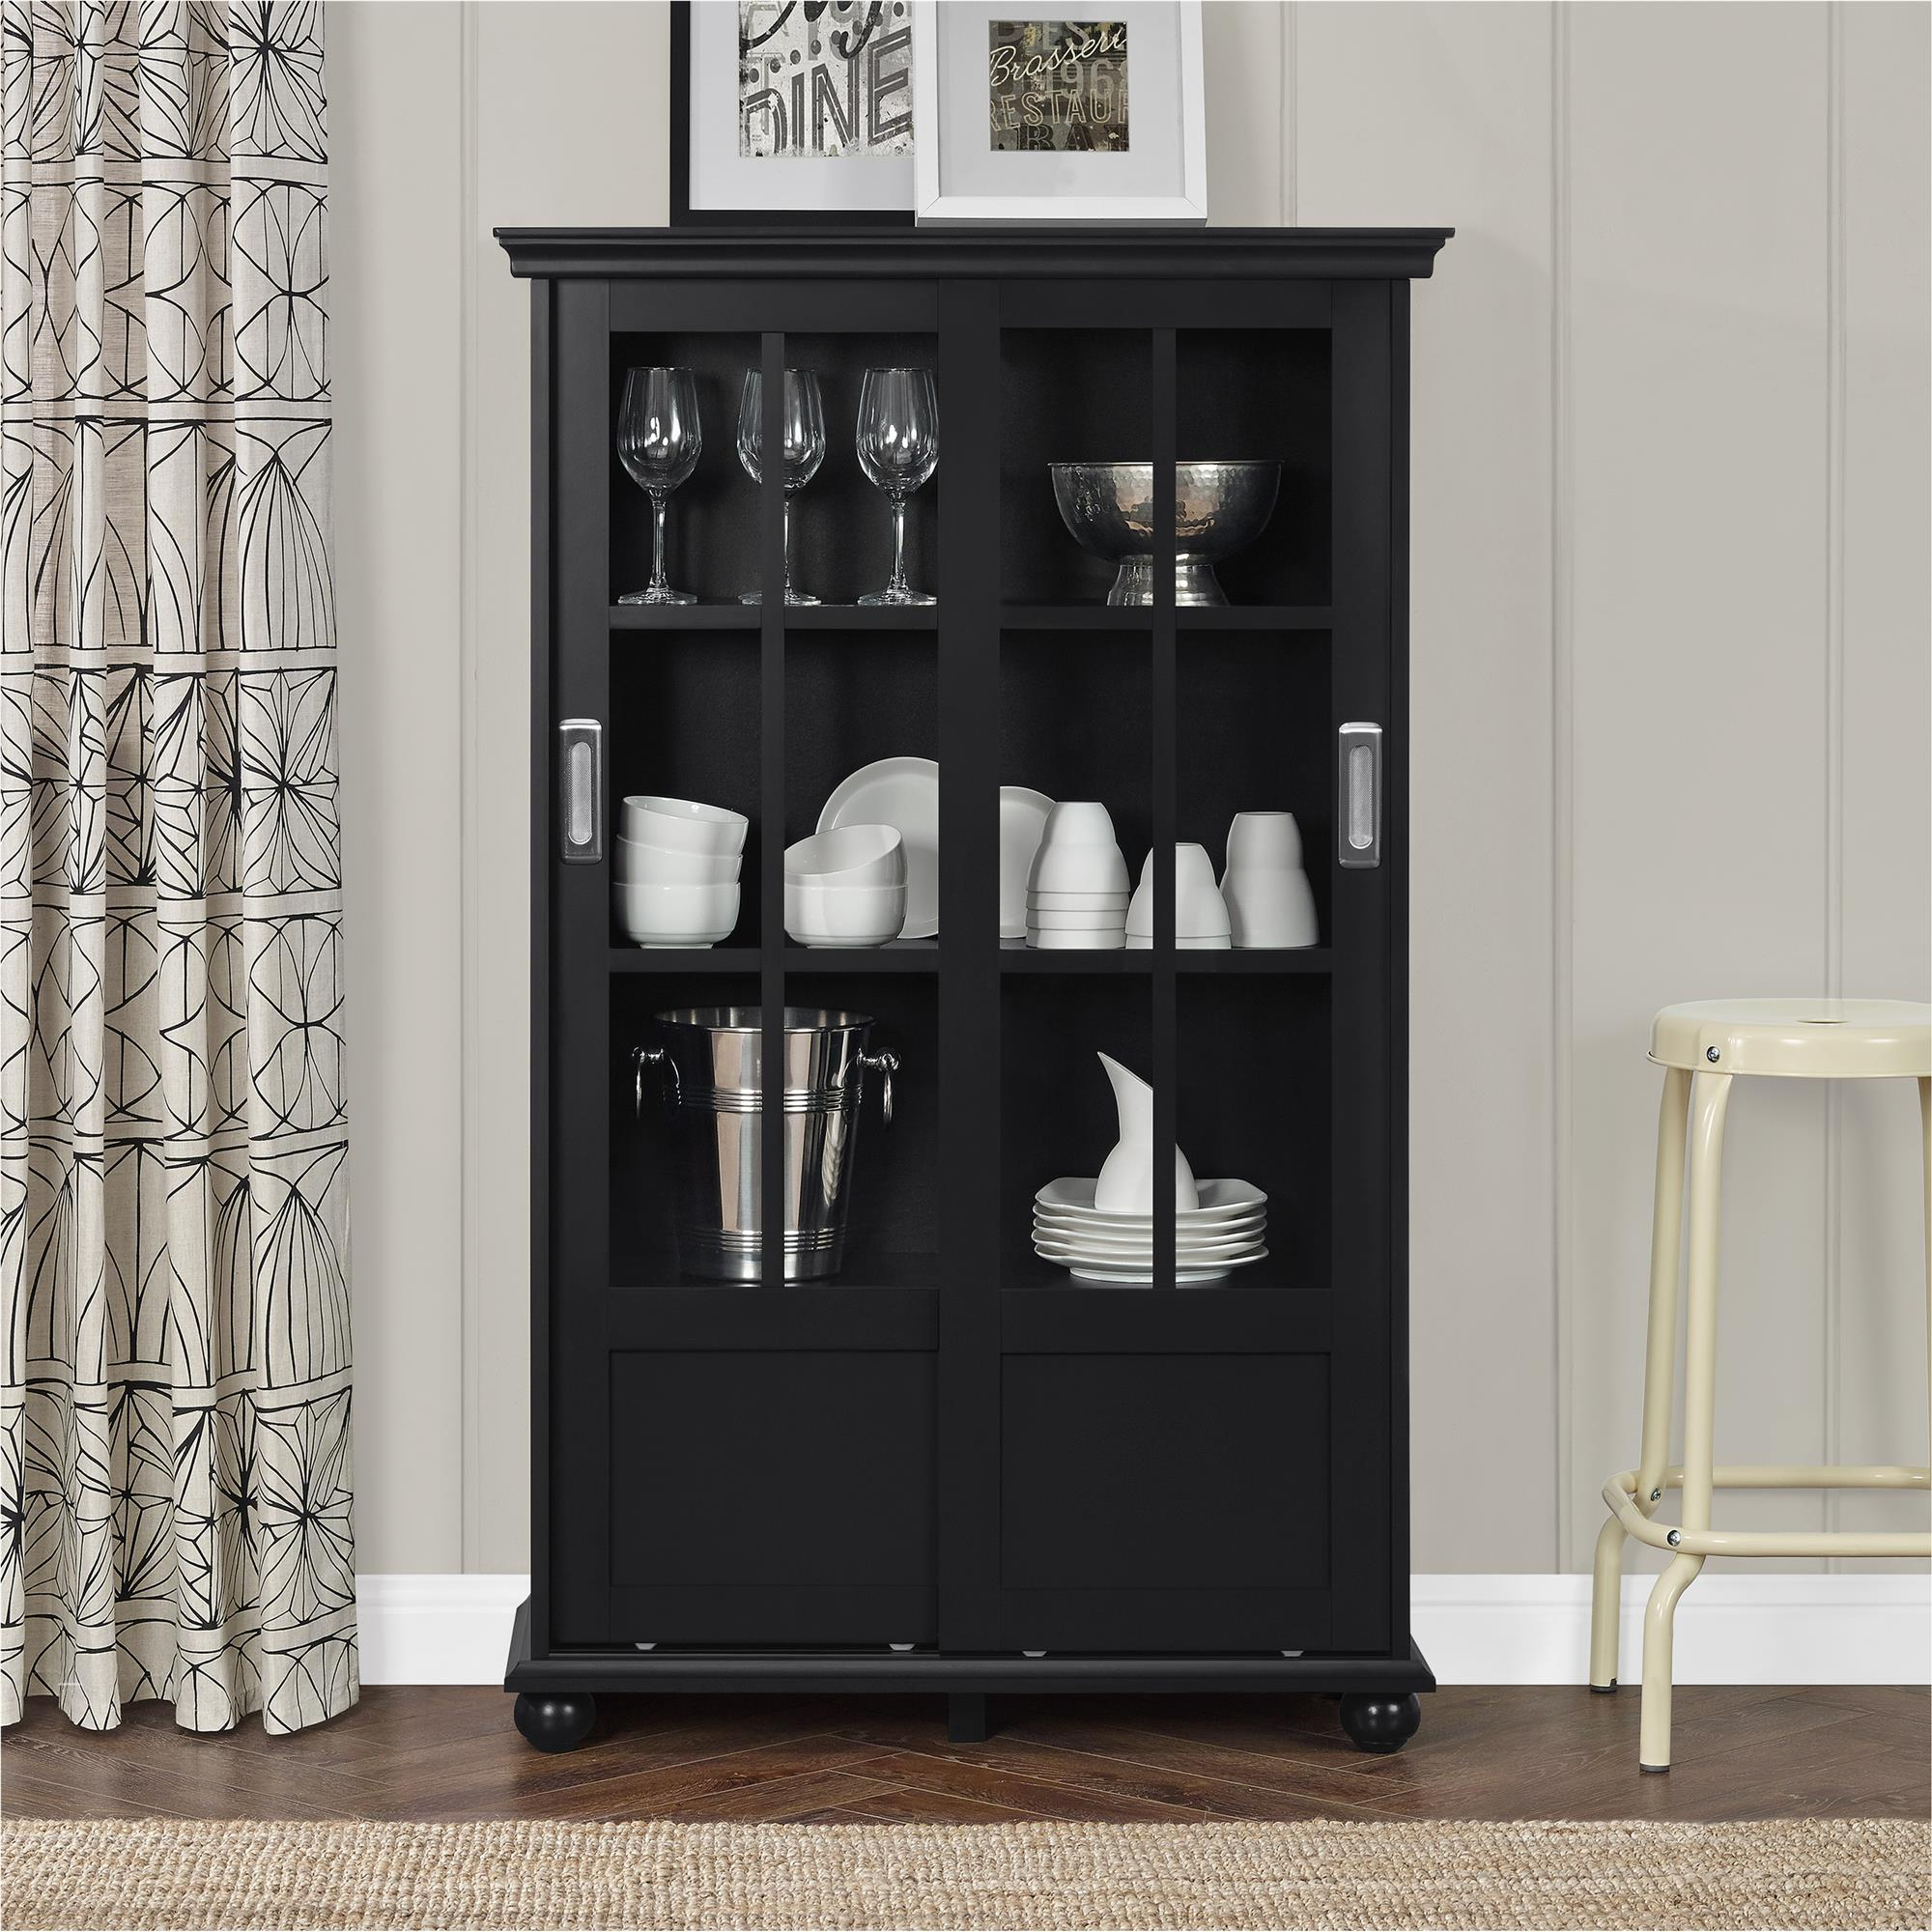 livingroom king stackable queen barrister by sliding with aaron furniture door altra decorating kropyok doors shelves brown white bookshelves ideas lane on size home bookcase bookshelf bookcases headboard glass